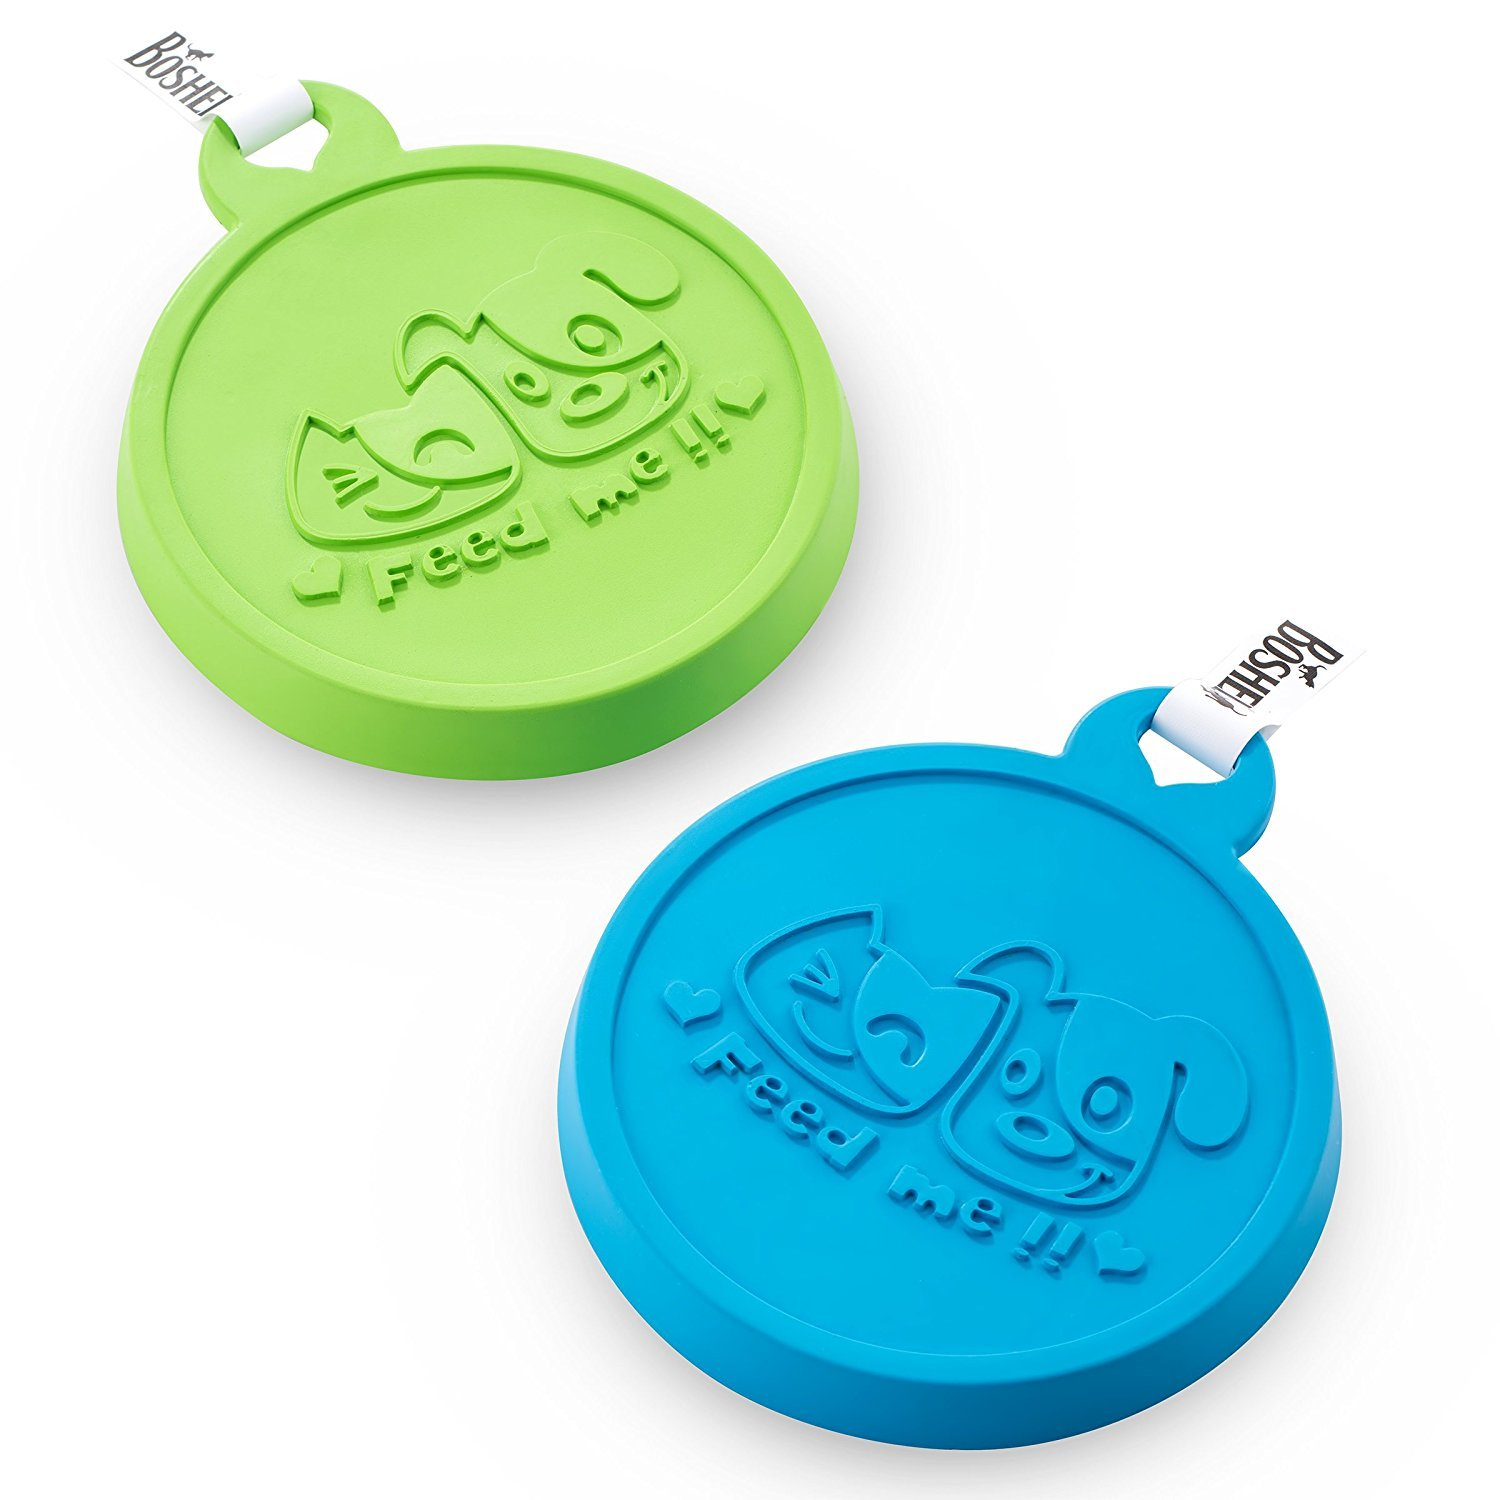 Pet Food Cover by Boshel - Set Of 2 Silicone Dog and Cat Food Lids Maintains Freshness & Locks in Smell - Each Pet Food Can Cover Fits 3 Can Sizes - FDA-Approved - Can Be Used For Both People & Pet Food